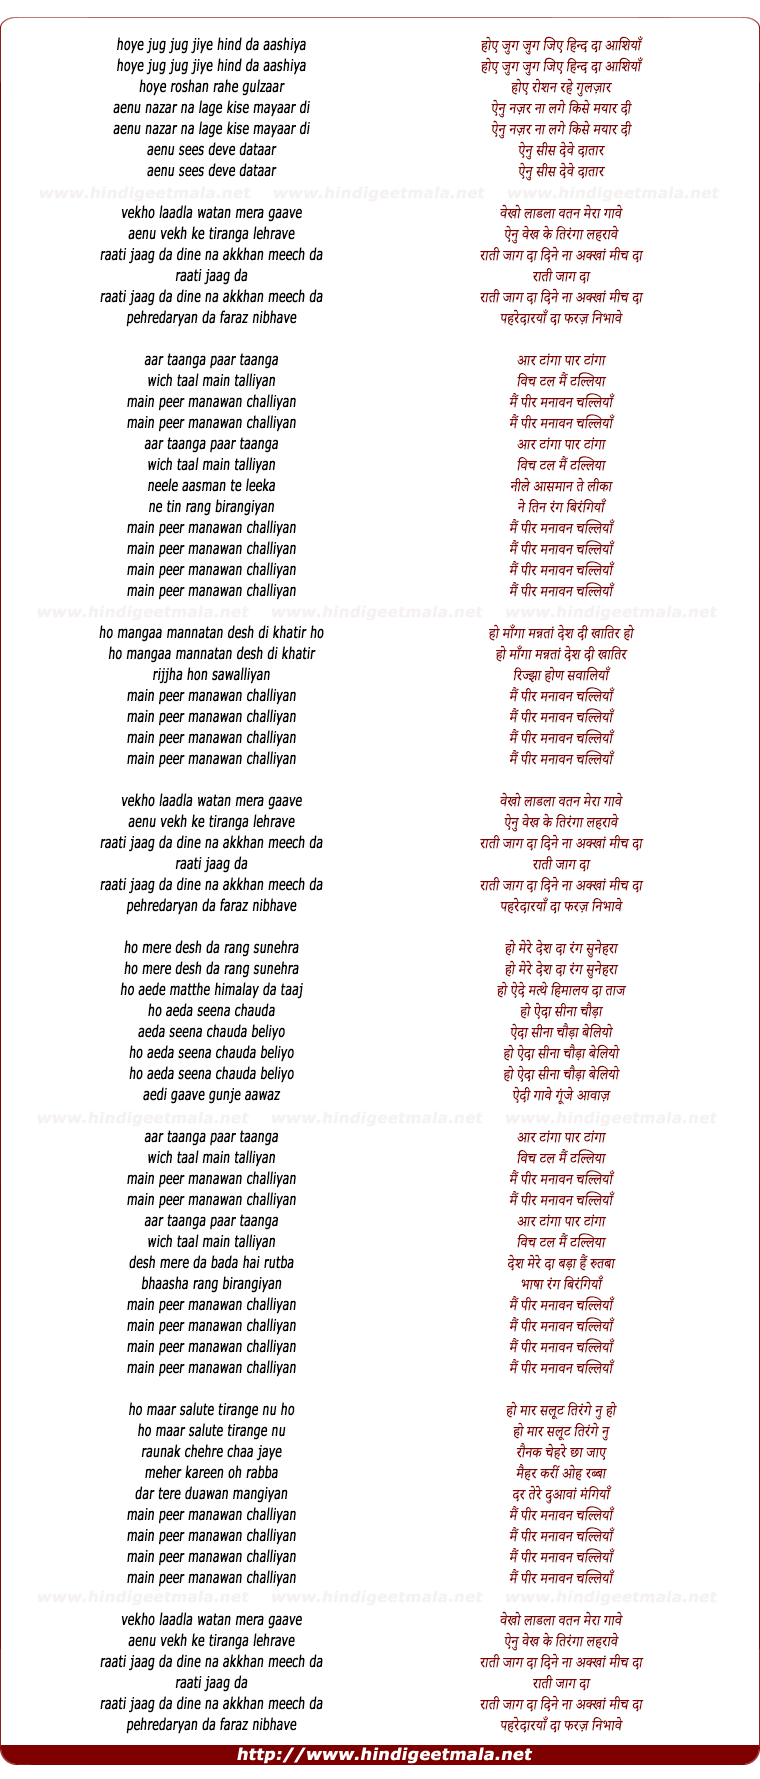 lyrics of song Peer Manaawan Challiyaan